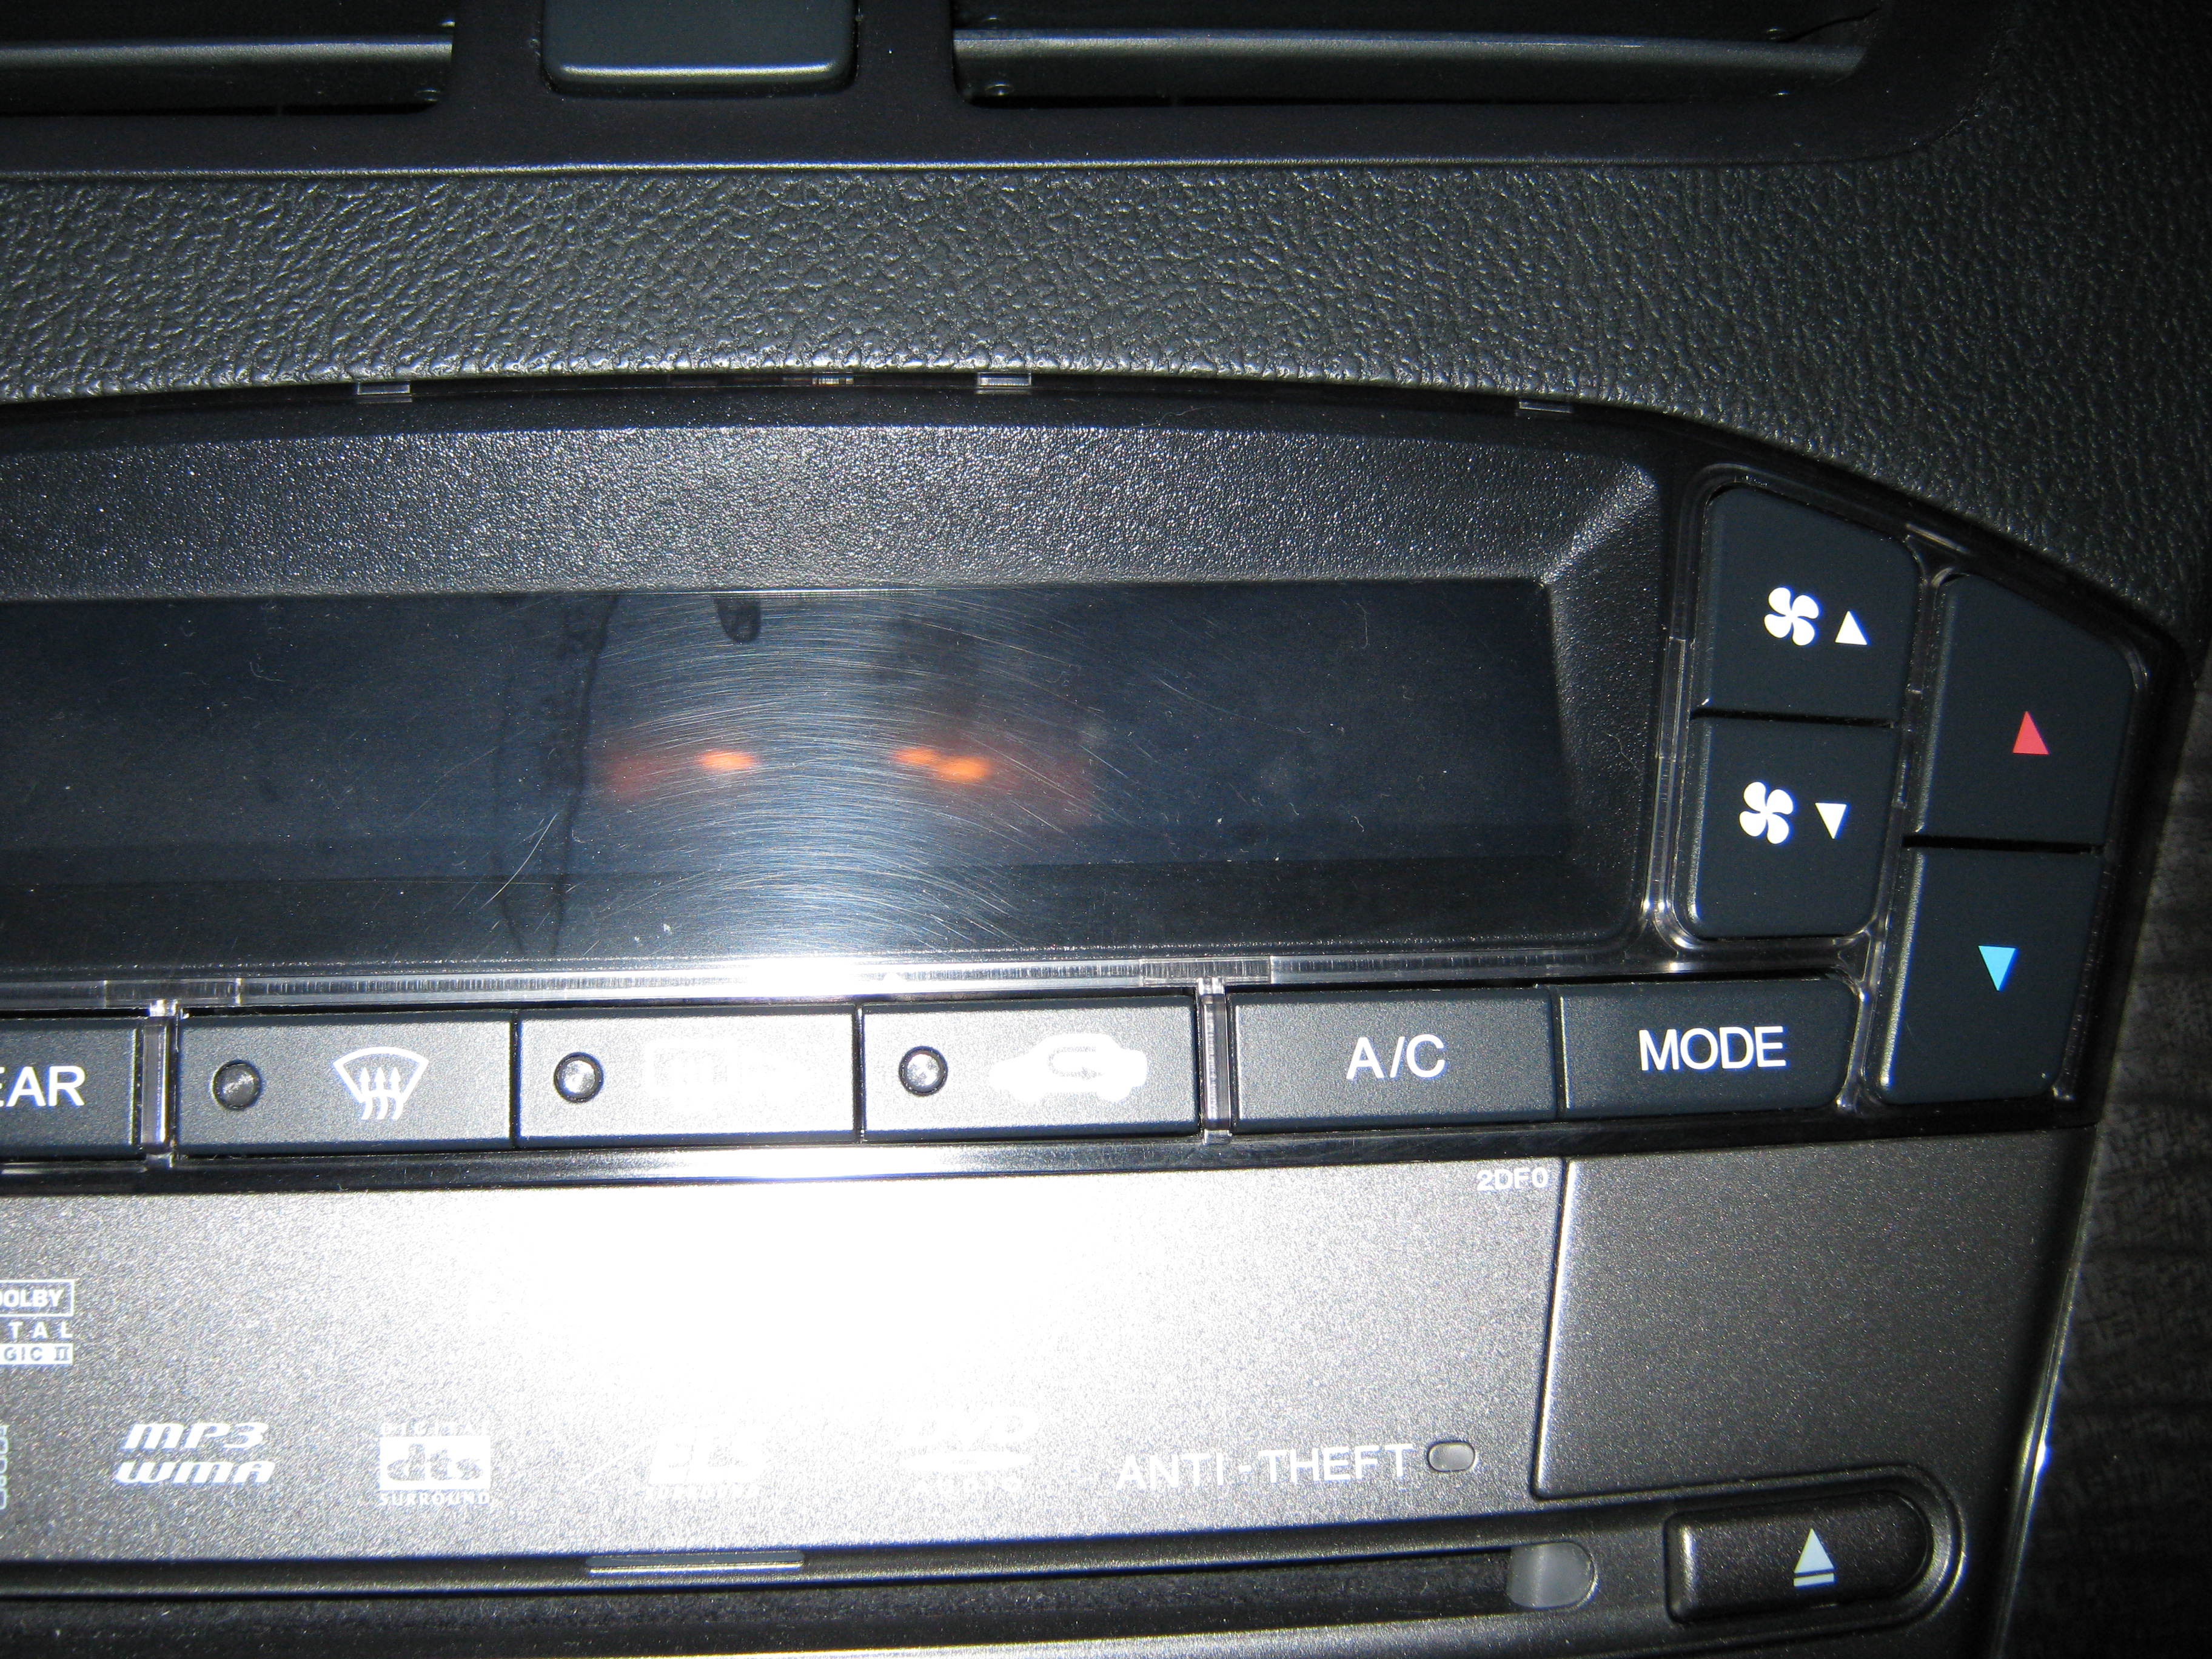 Removing clear plastic LCD display cover from center console?-img_0295.jpg